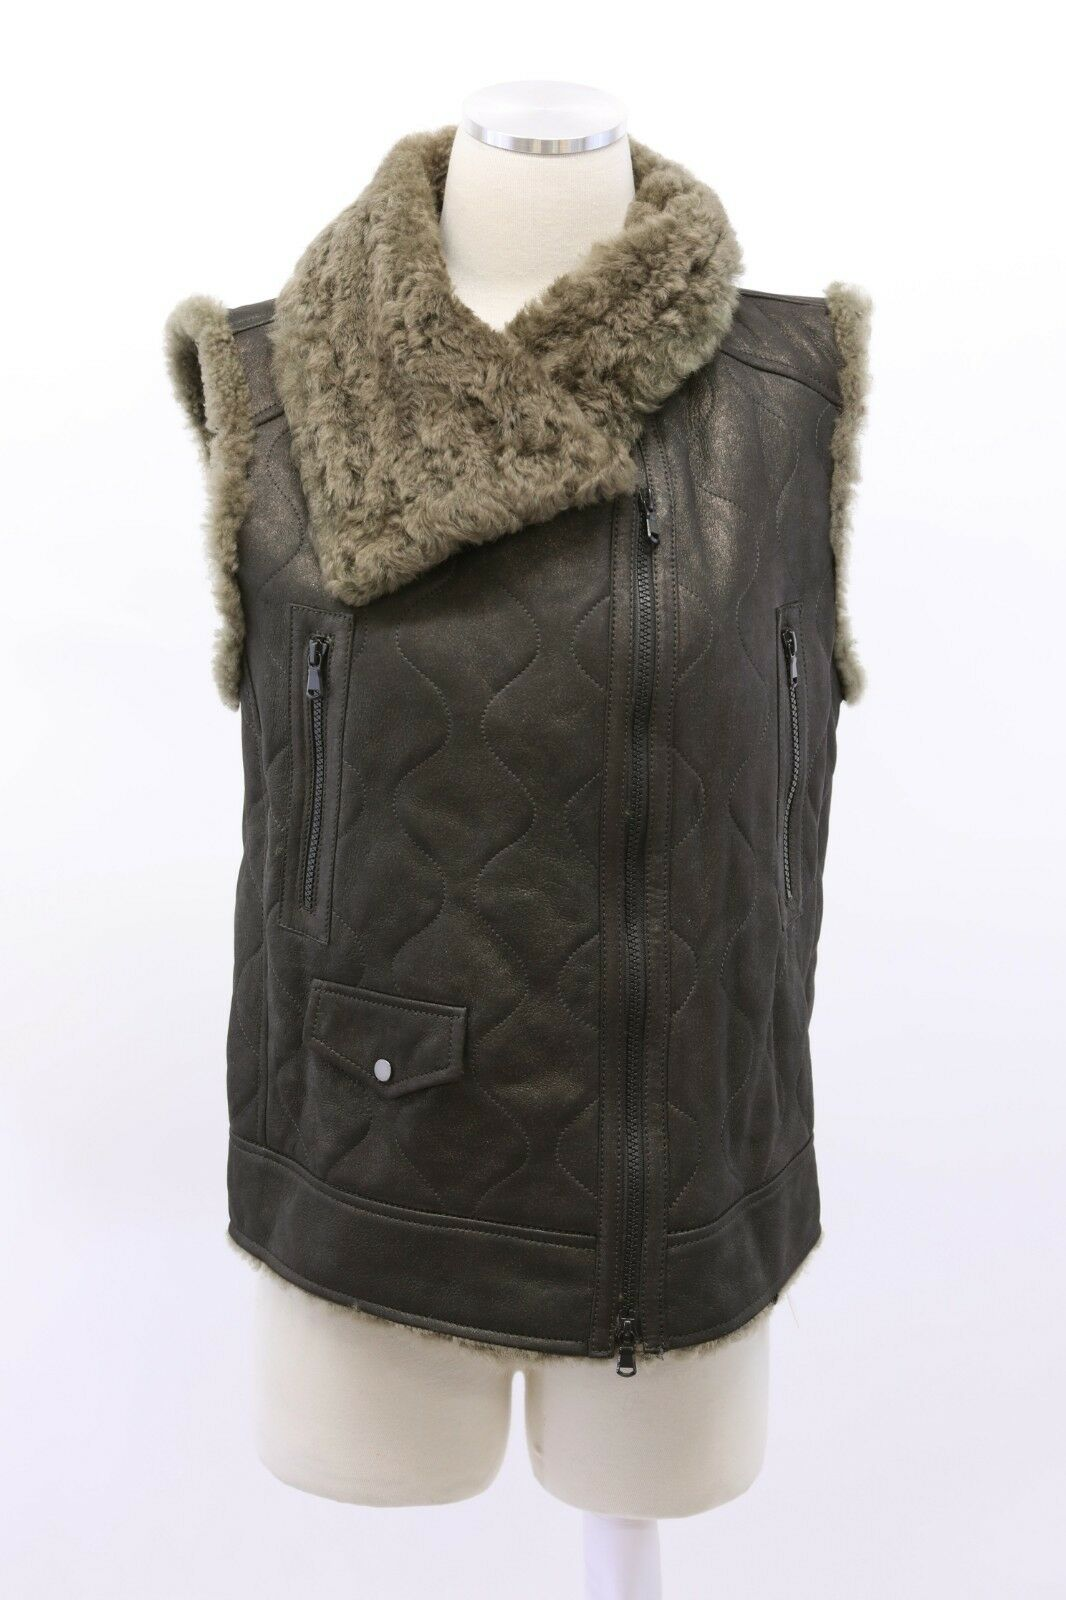 NWT 8245 Brunello Cucinelli Quilted Metallic Leather Leather Leather Shearling Fur Vest 42M A191 59786e